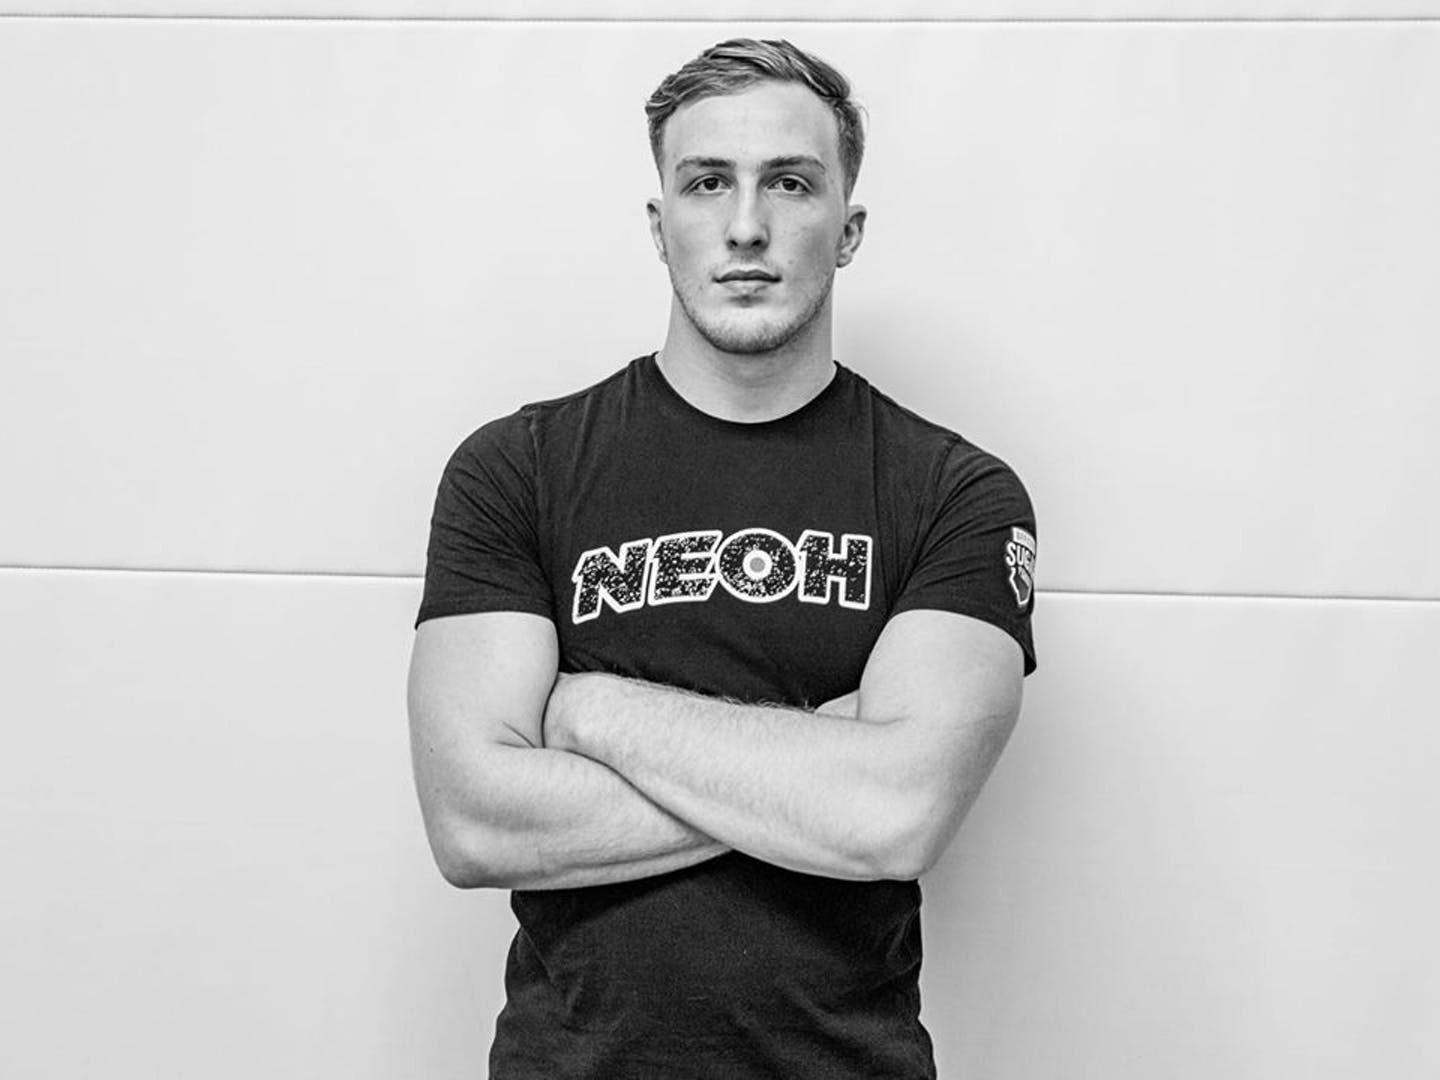 NEOH Athlete Markus Ragginger